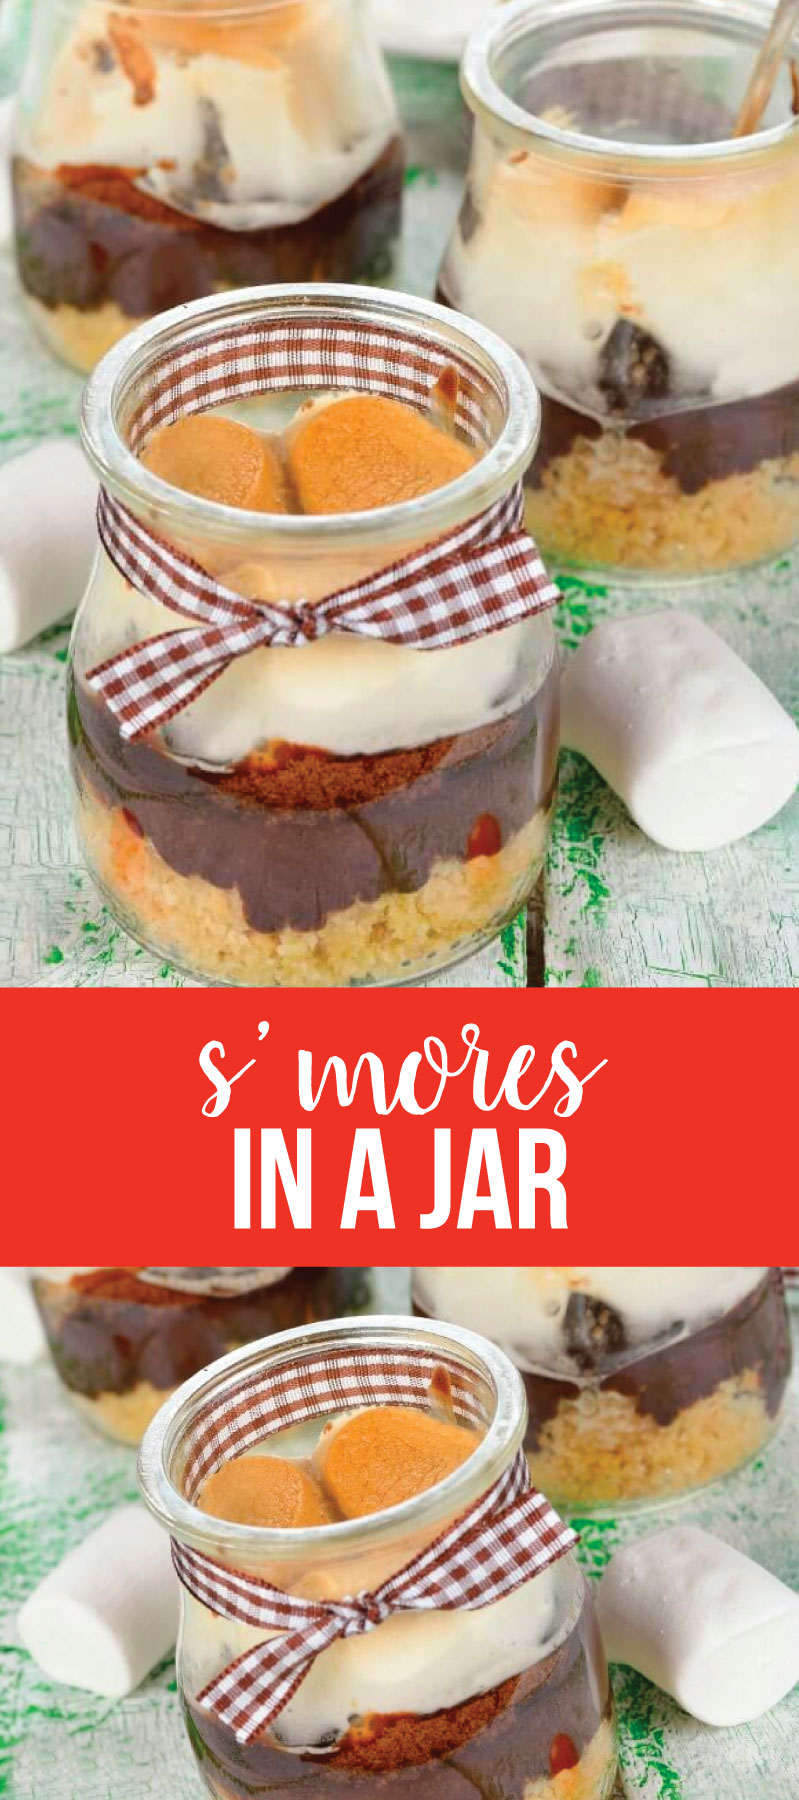 S'mores Dessert in a Jar - make these cute treats for summer!